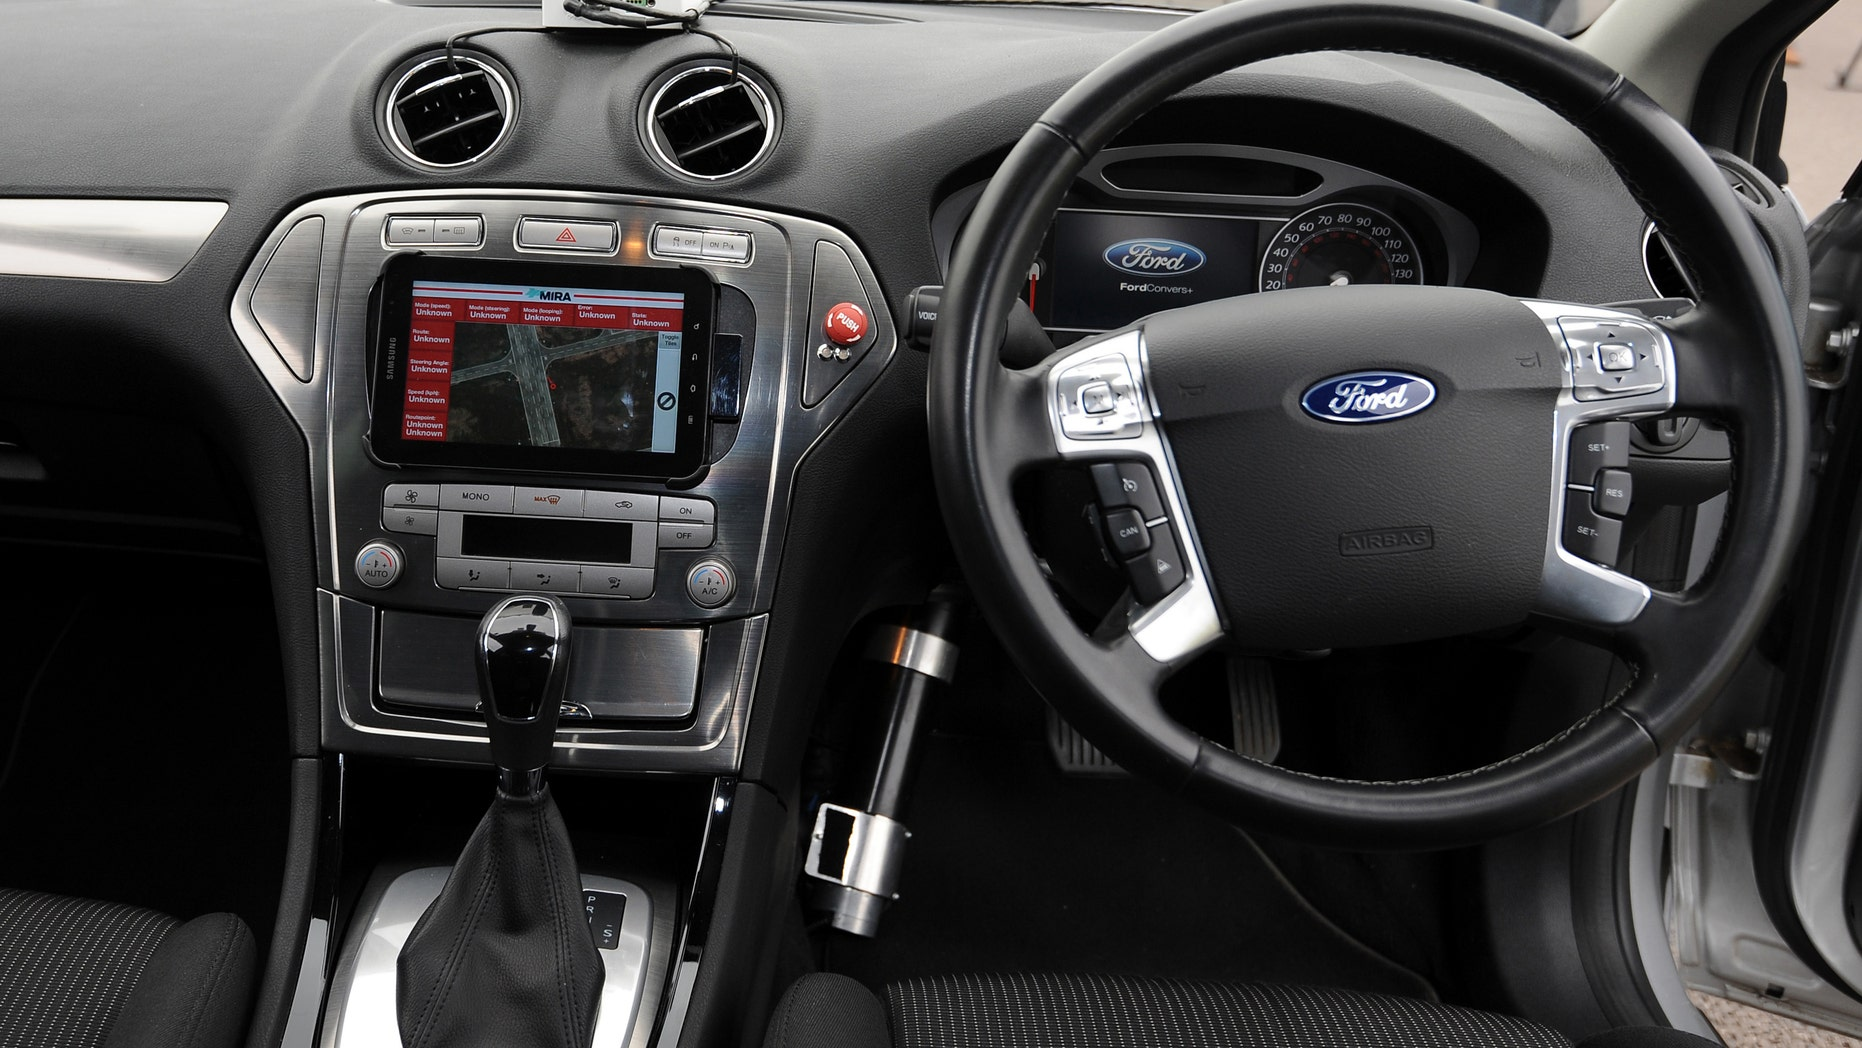 The interior of a driverless car during testing at the headquarters of motor industry research organization MIRA at Nuneaton in the West Midlands, England.